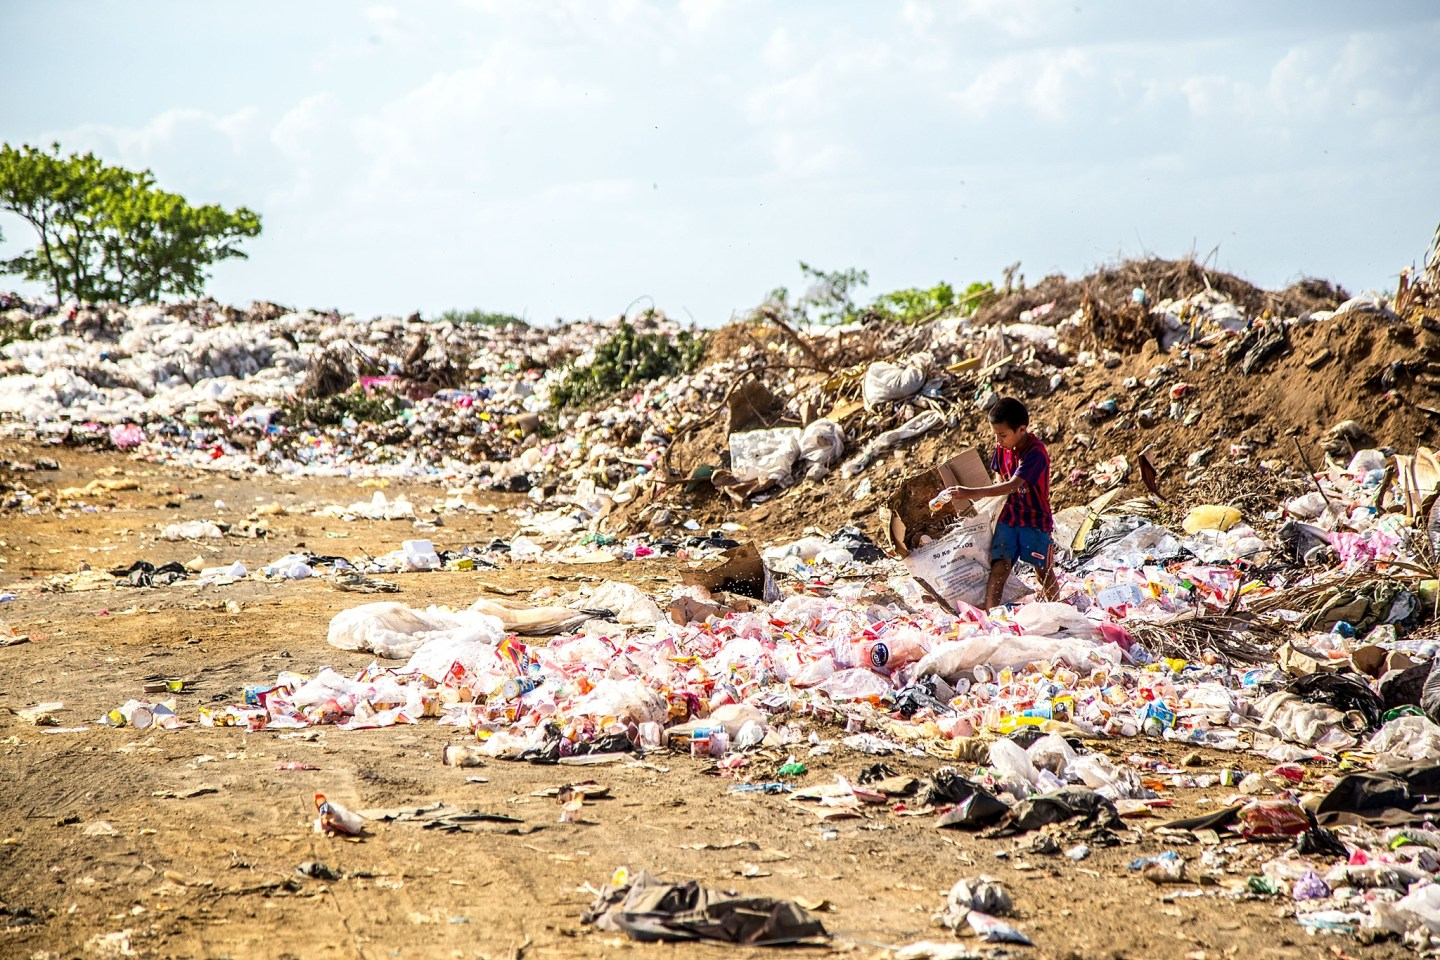 Plastic: Out of Sight, Out of Mind?